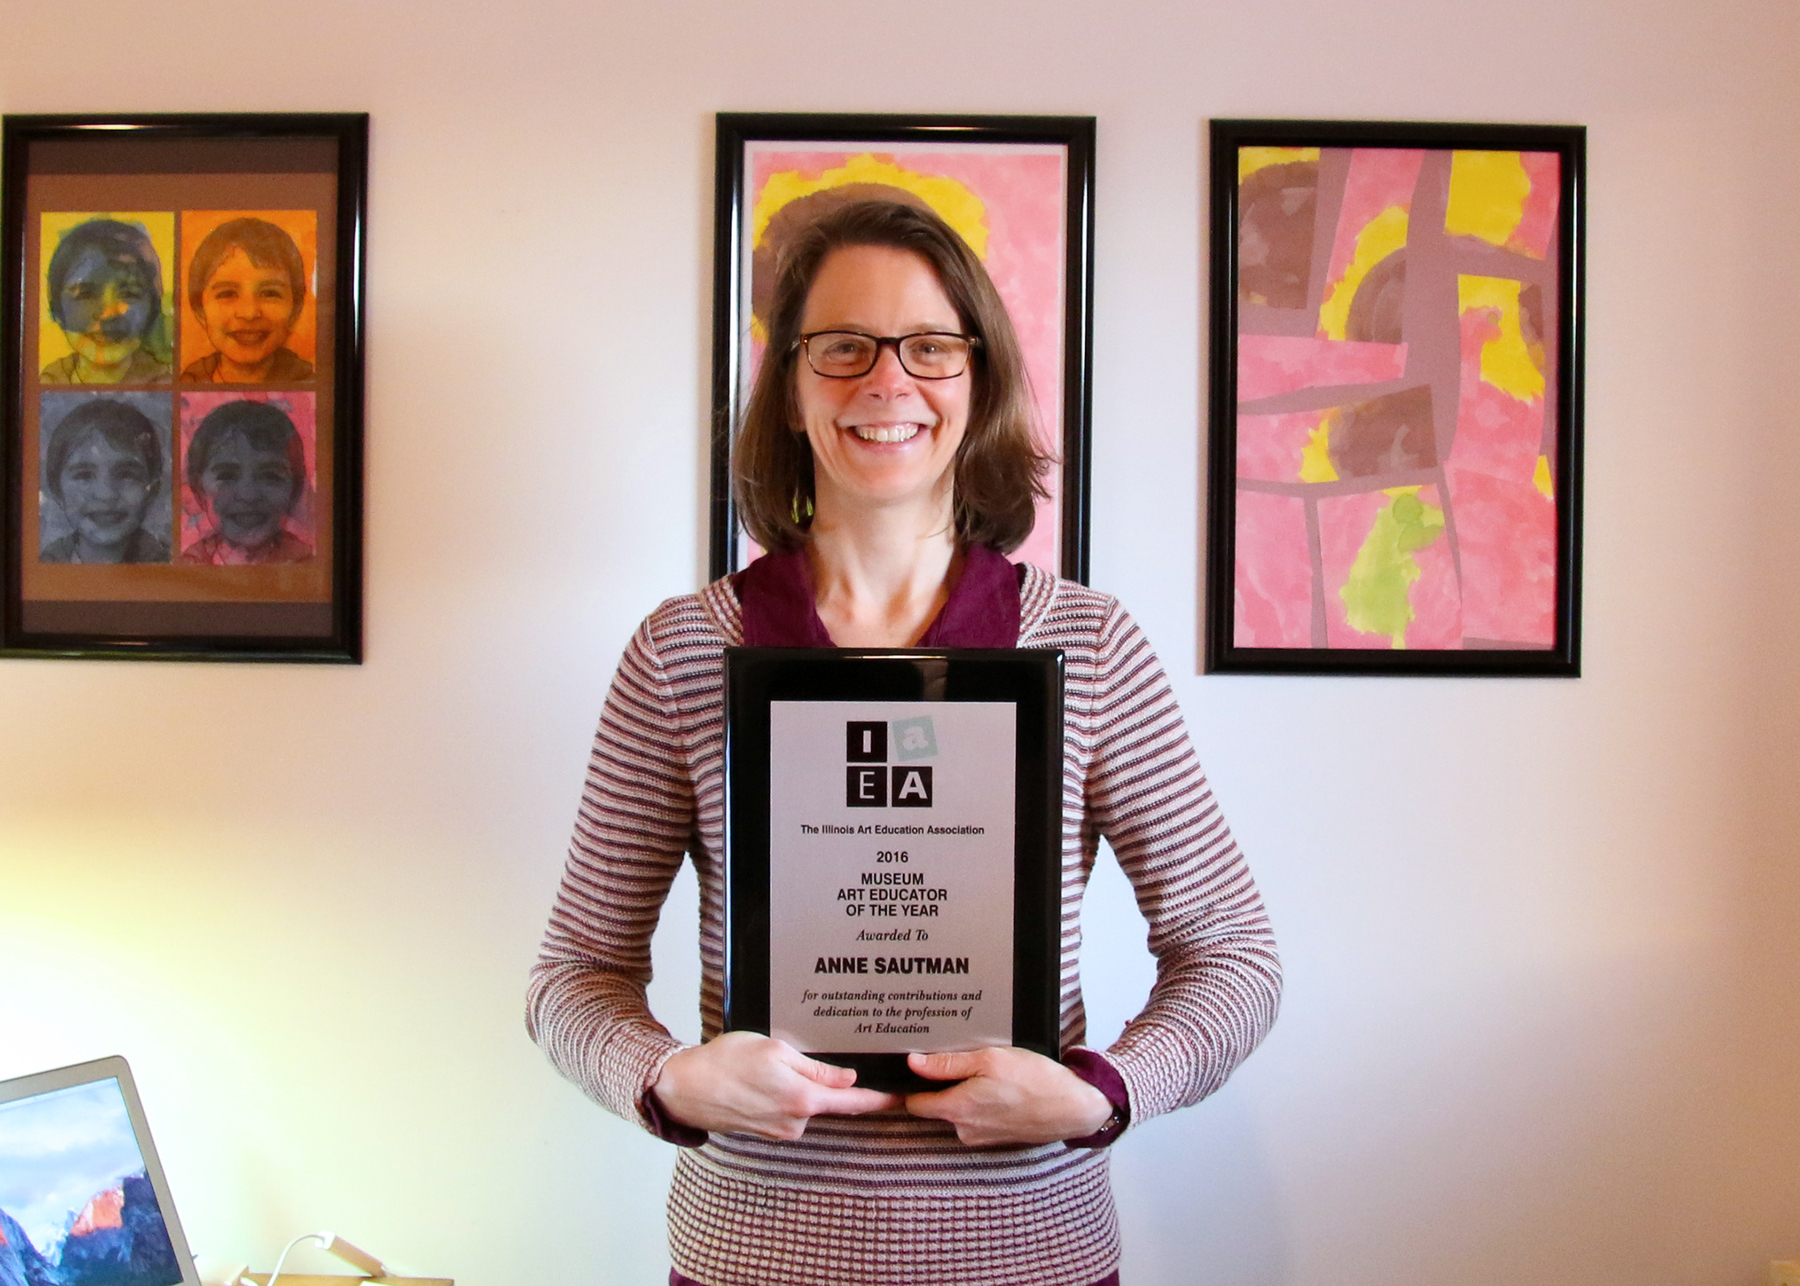 Krannert Art Museum Education Director Anne Sautman, 2016 IAEA Art Educator of the Year (Photo by Julia Nucci Kelly)